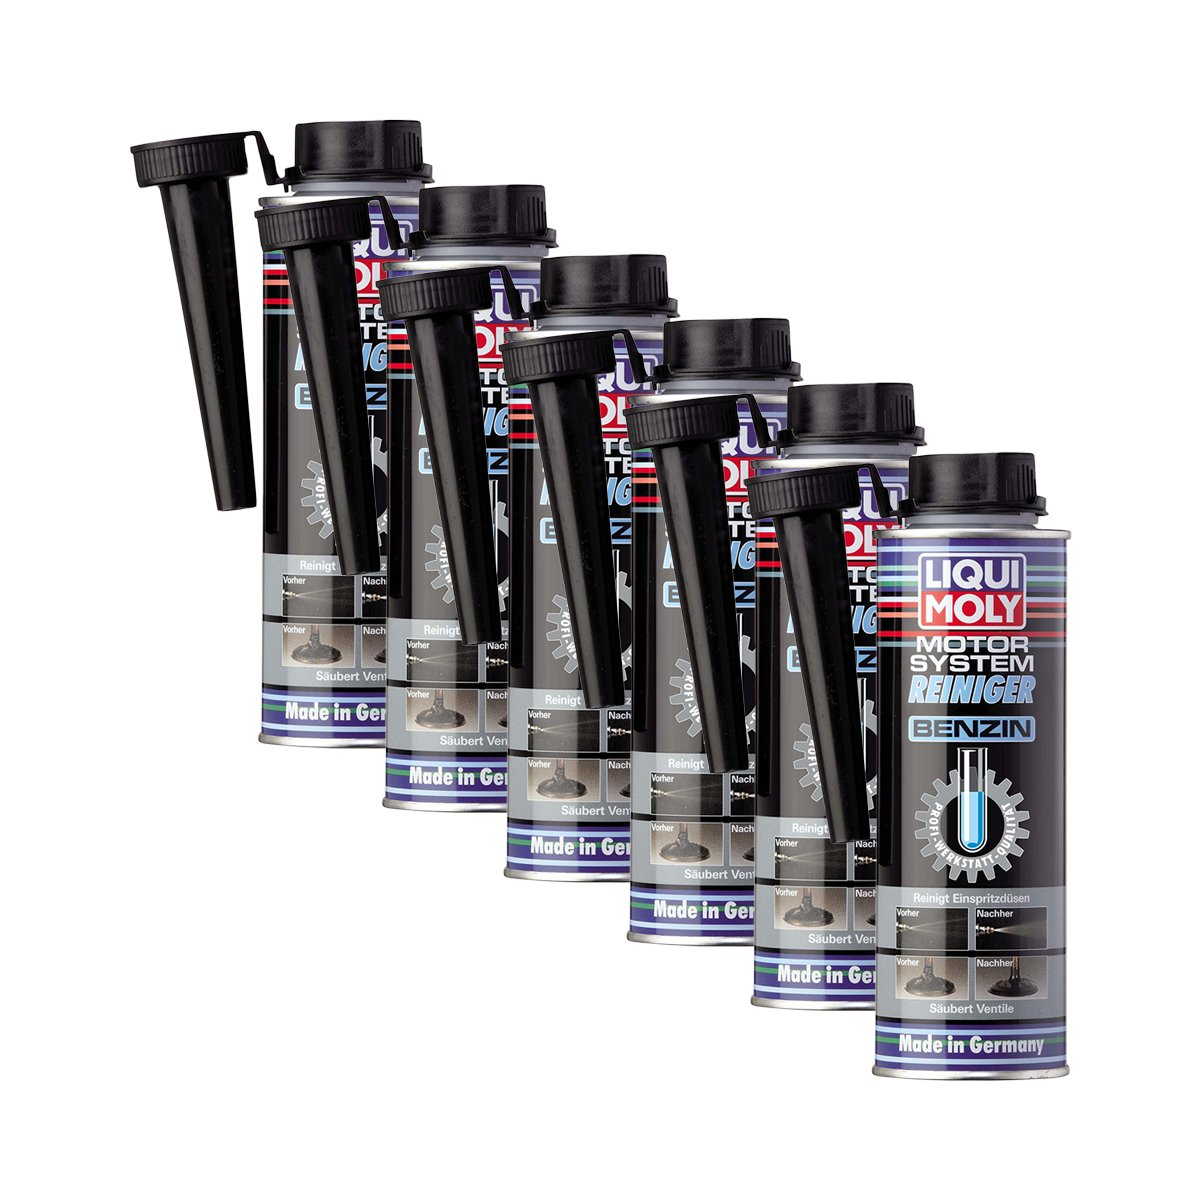 6x liqui moly 5129 motor system reiniger benzin additiv 300ml. Black Bedroom Furniture Sets. Home Design Ideas